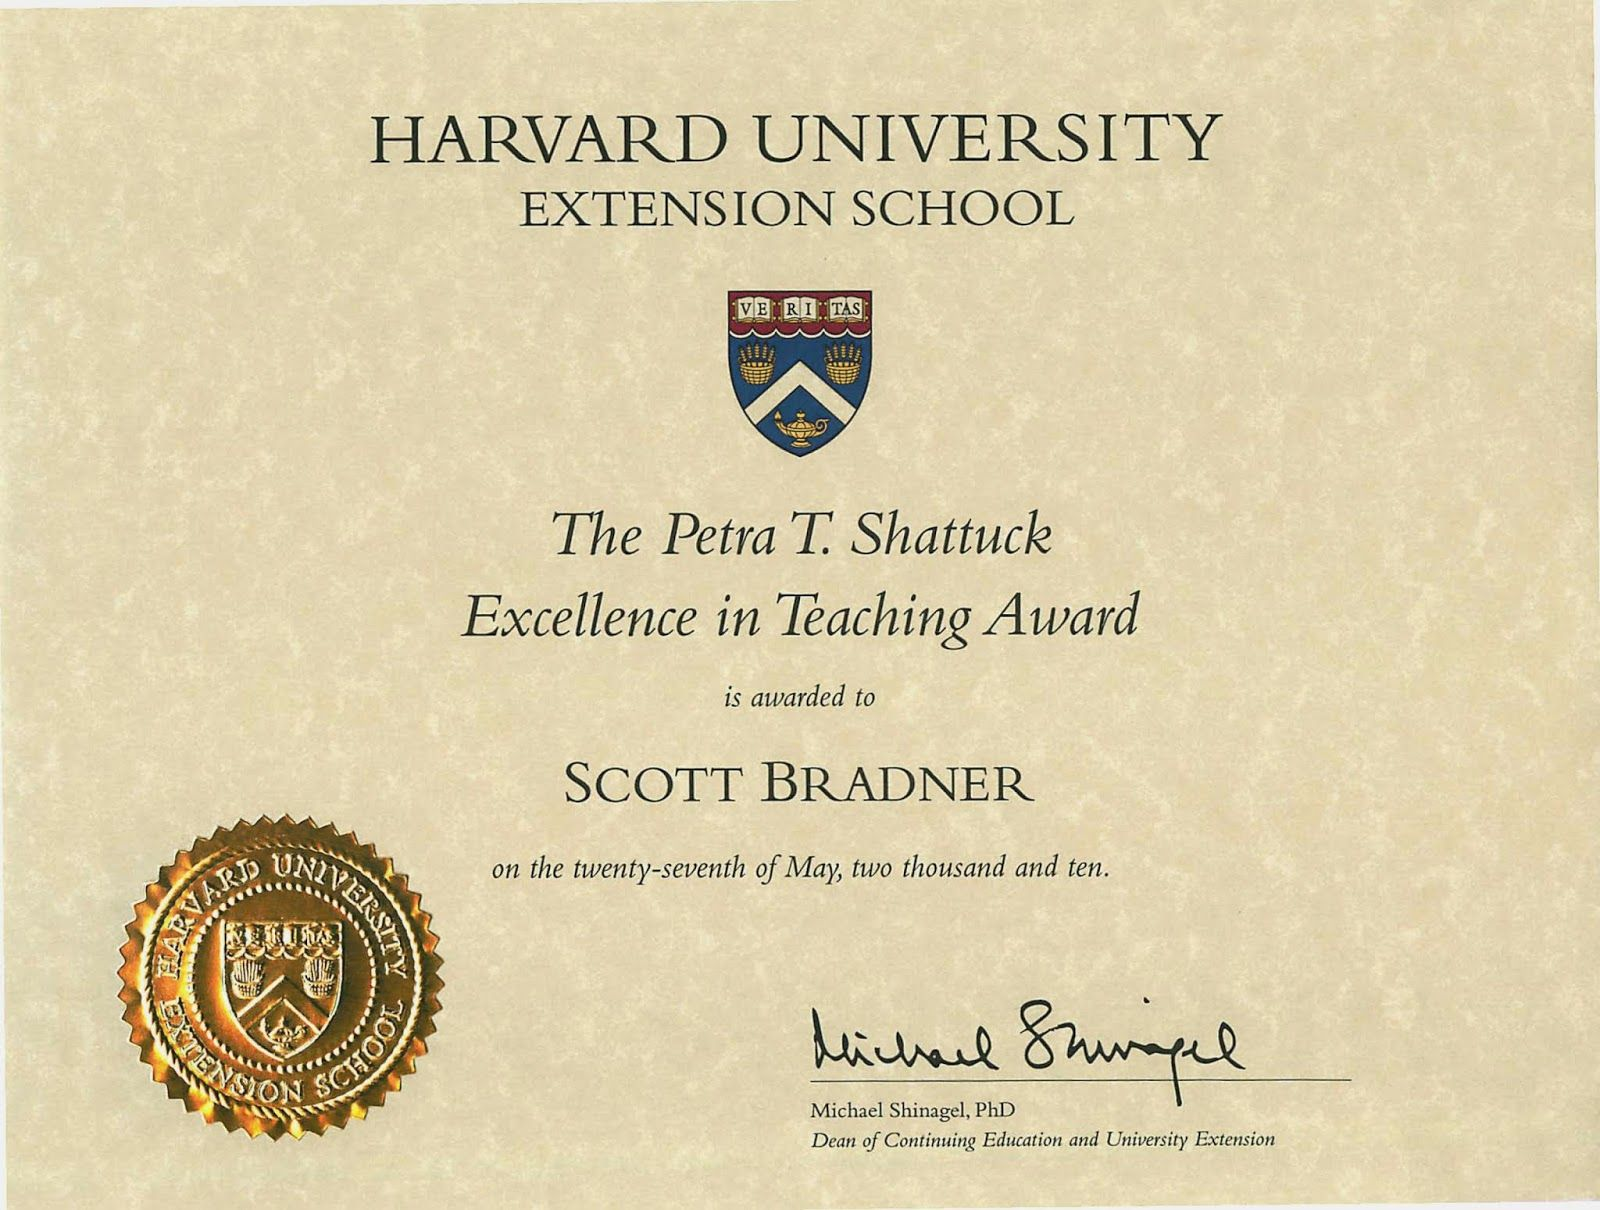 harvard extension school resume resumes and cover letters scho job samples university for Resume Harvard University Extension School Resume